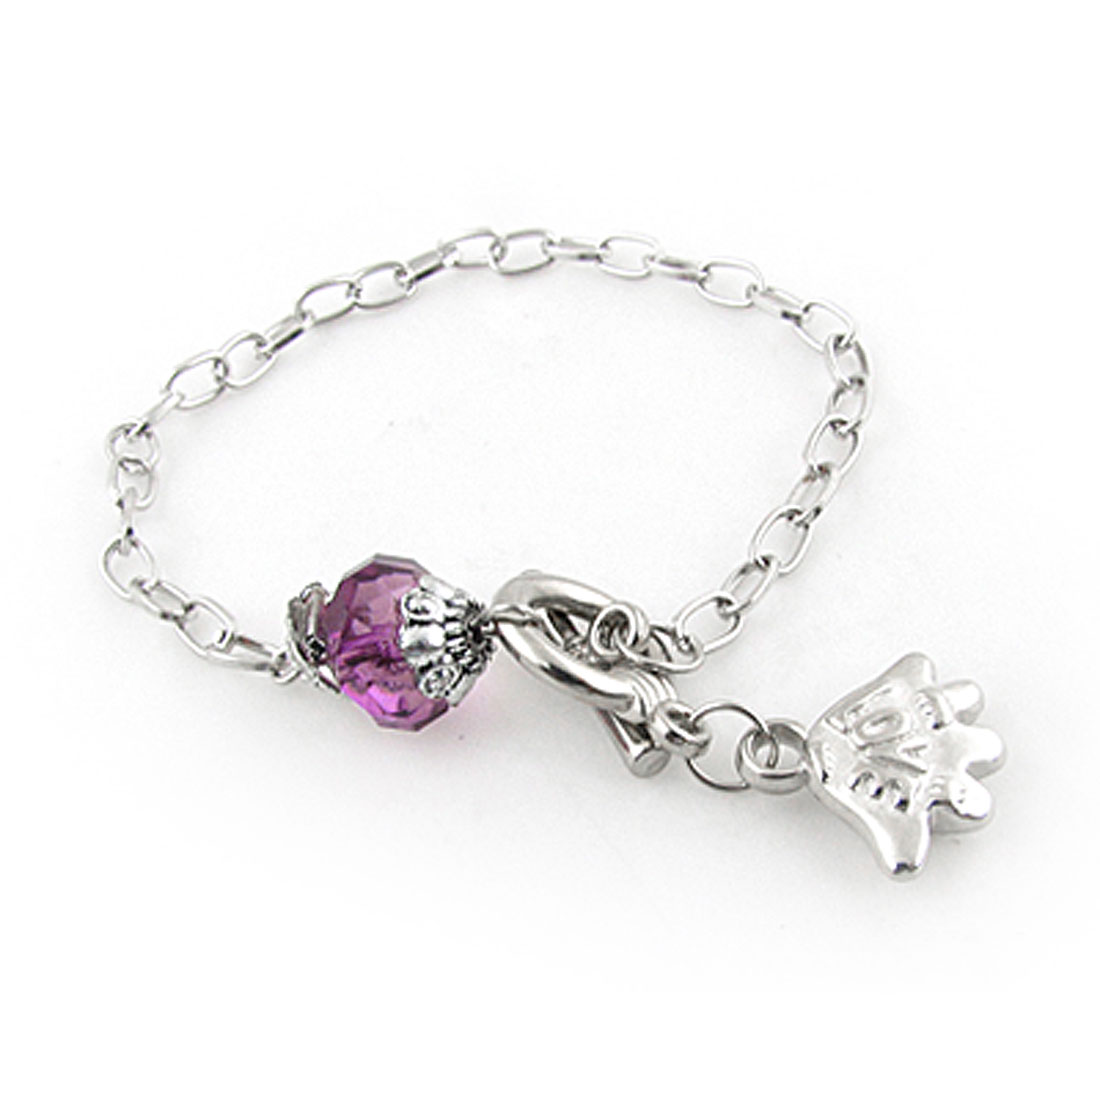 Plastic Dark Purple Diamond Pendant Silver Tone Bracelet for Women